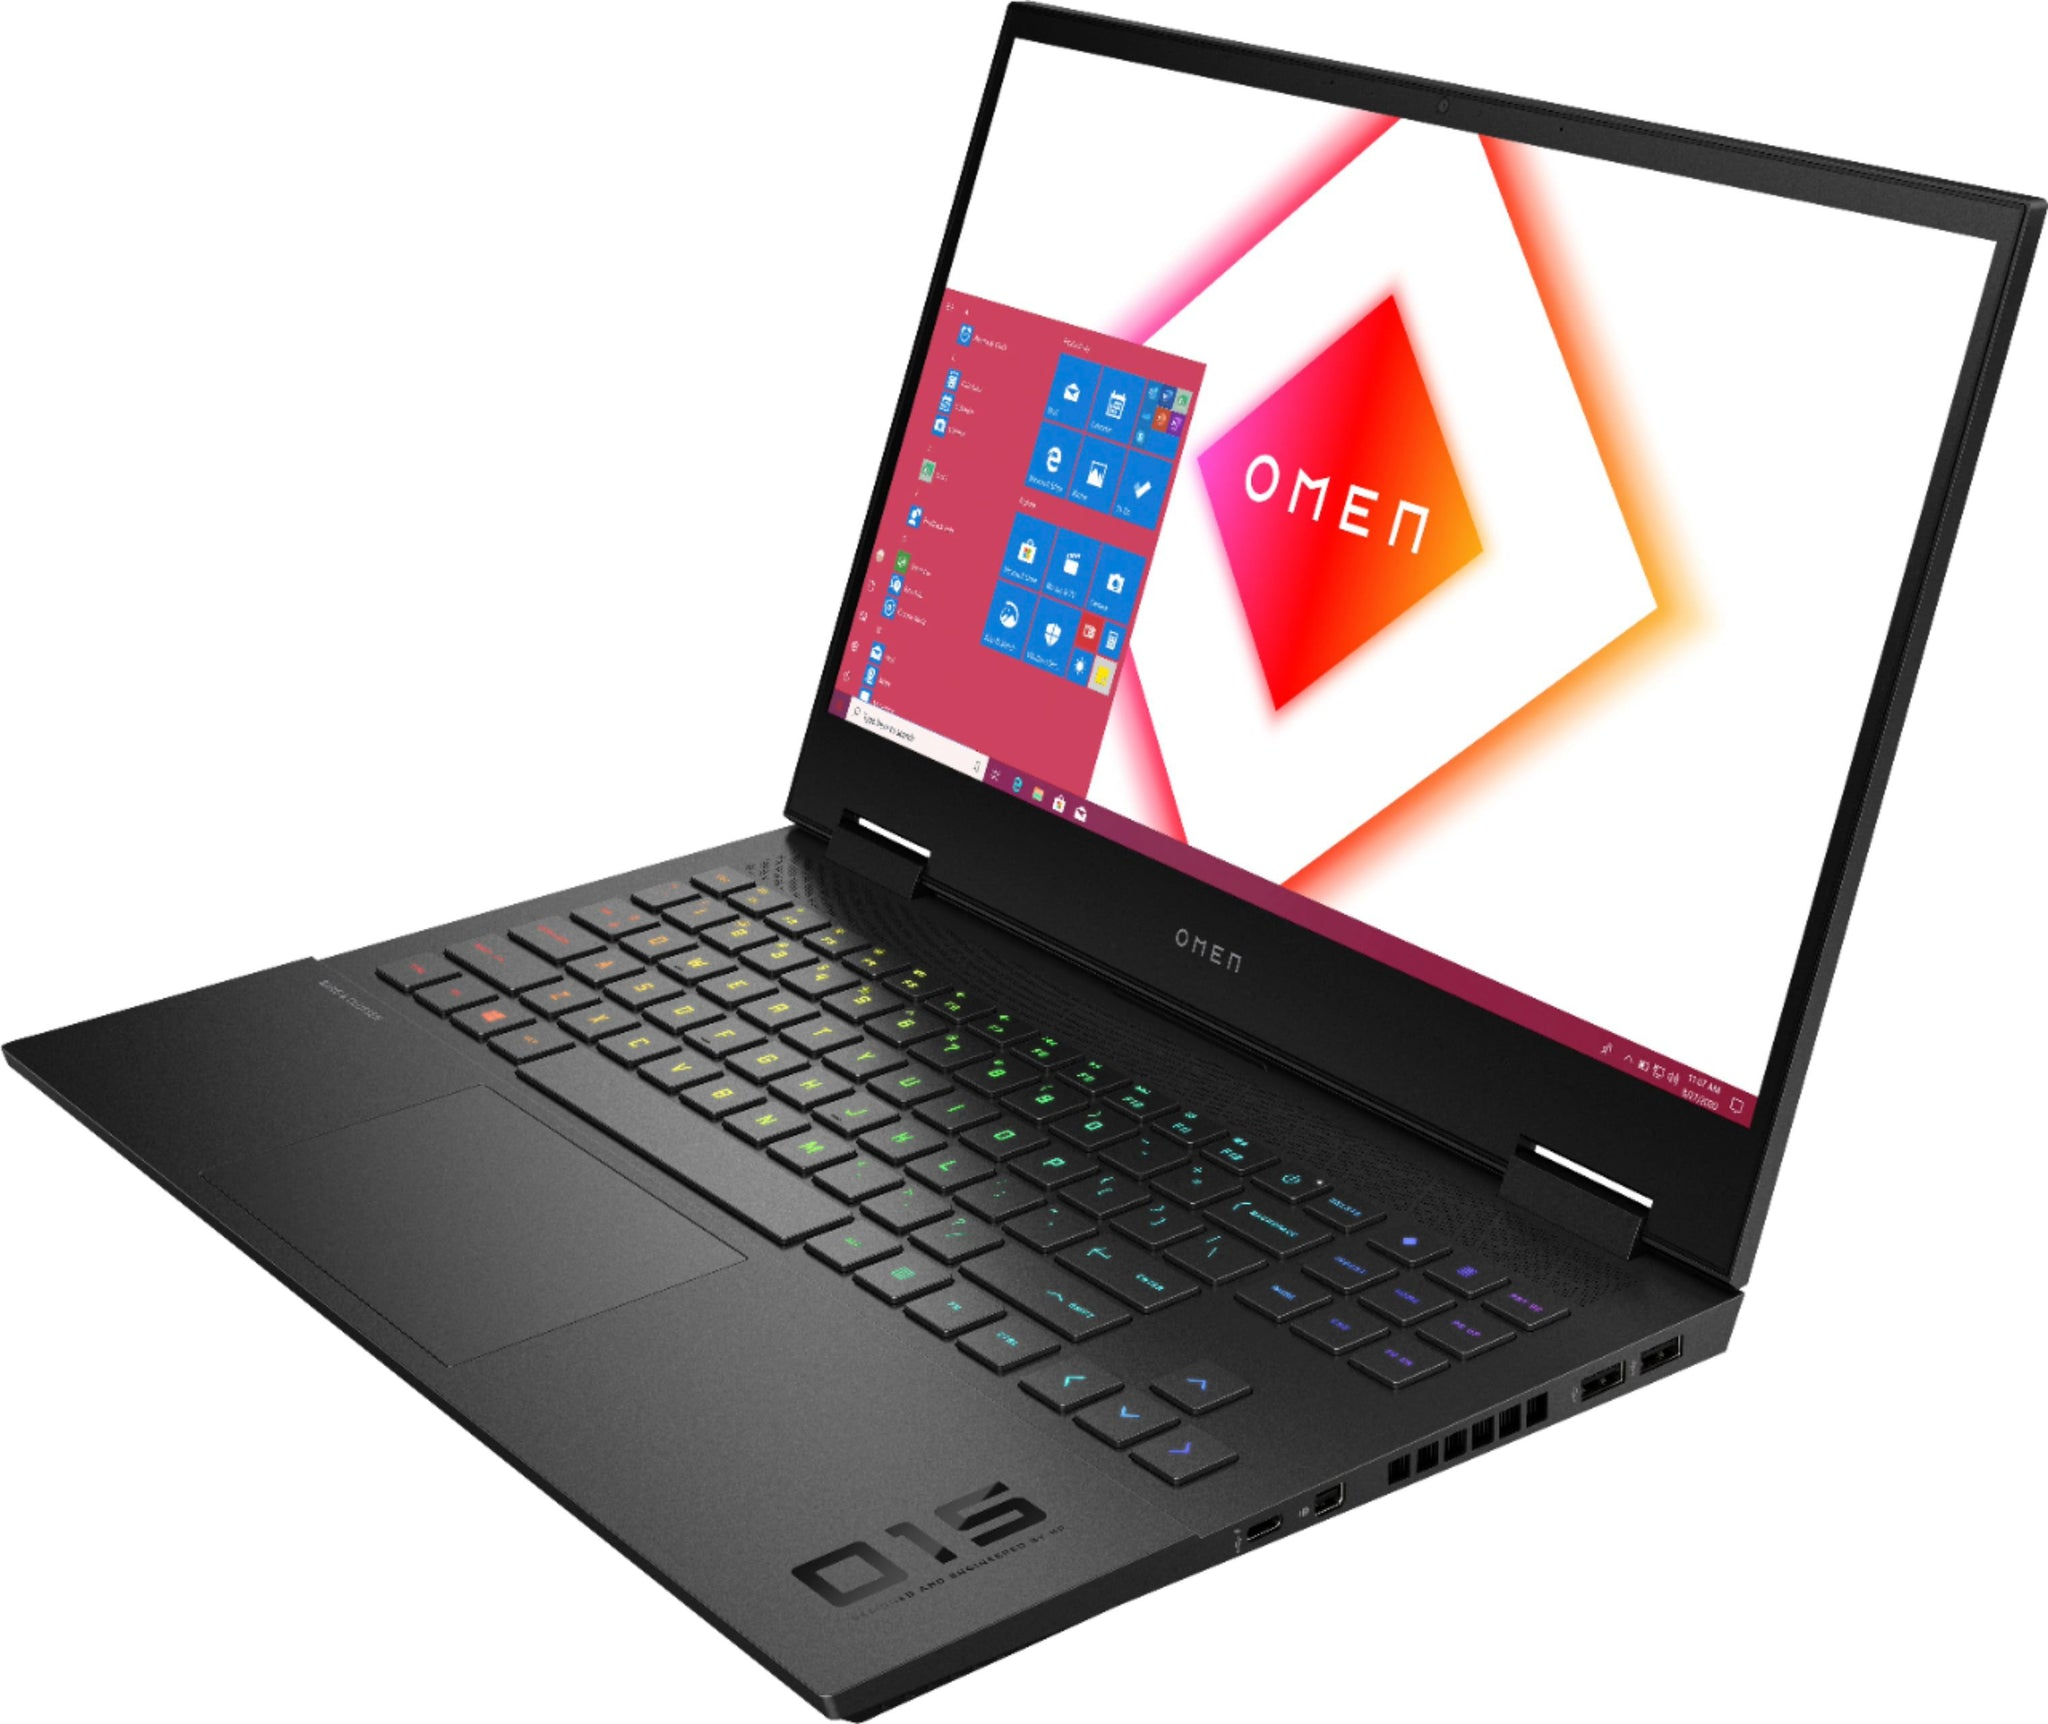 HP OMEN 2020 Gaming Laptop - 15.6